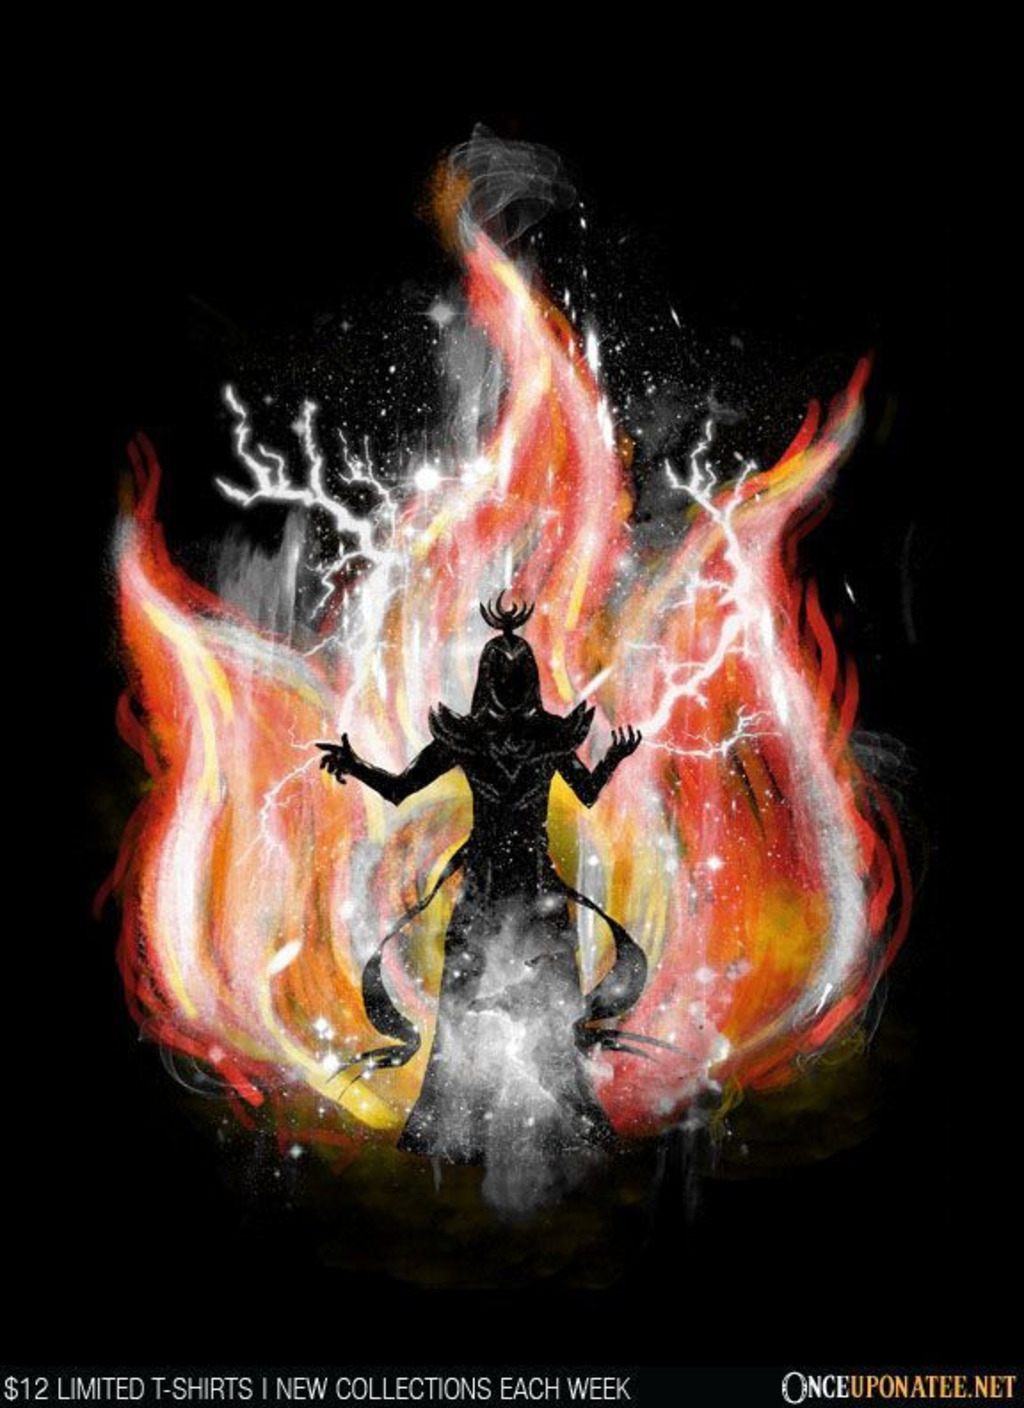 Once Upon a Tee: Fire Silhouette